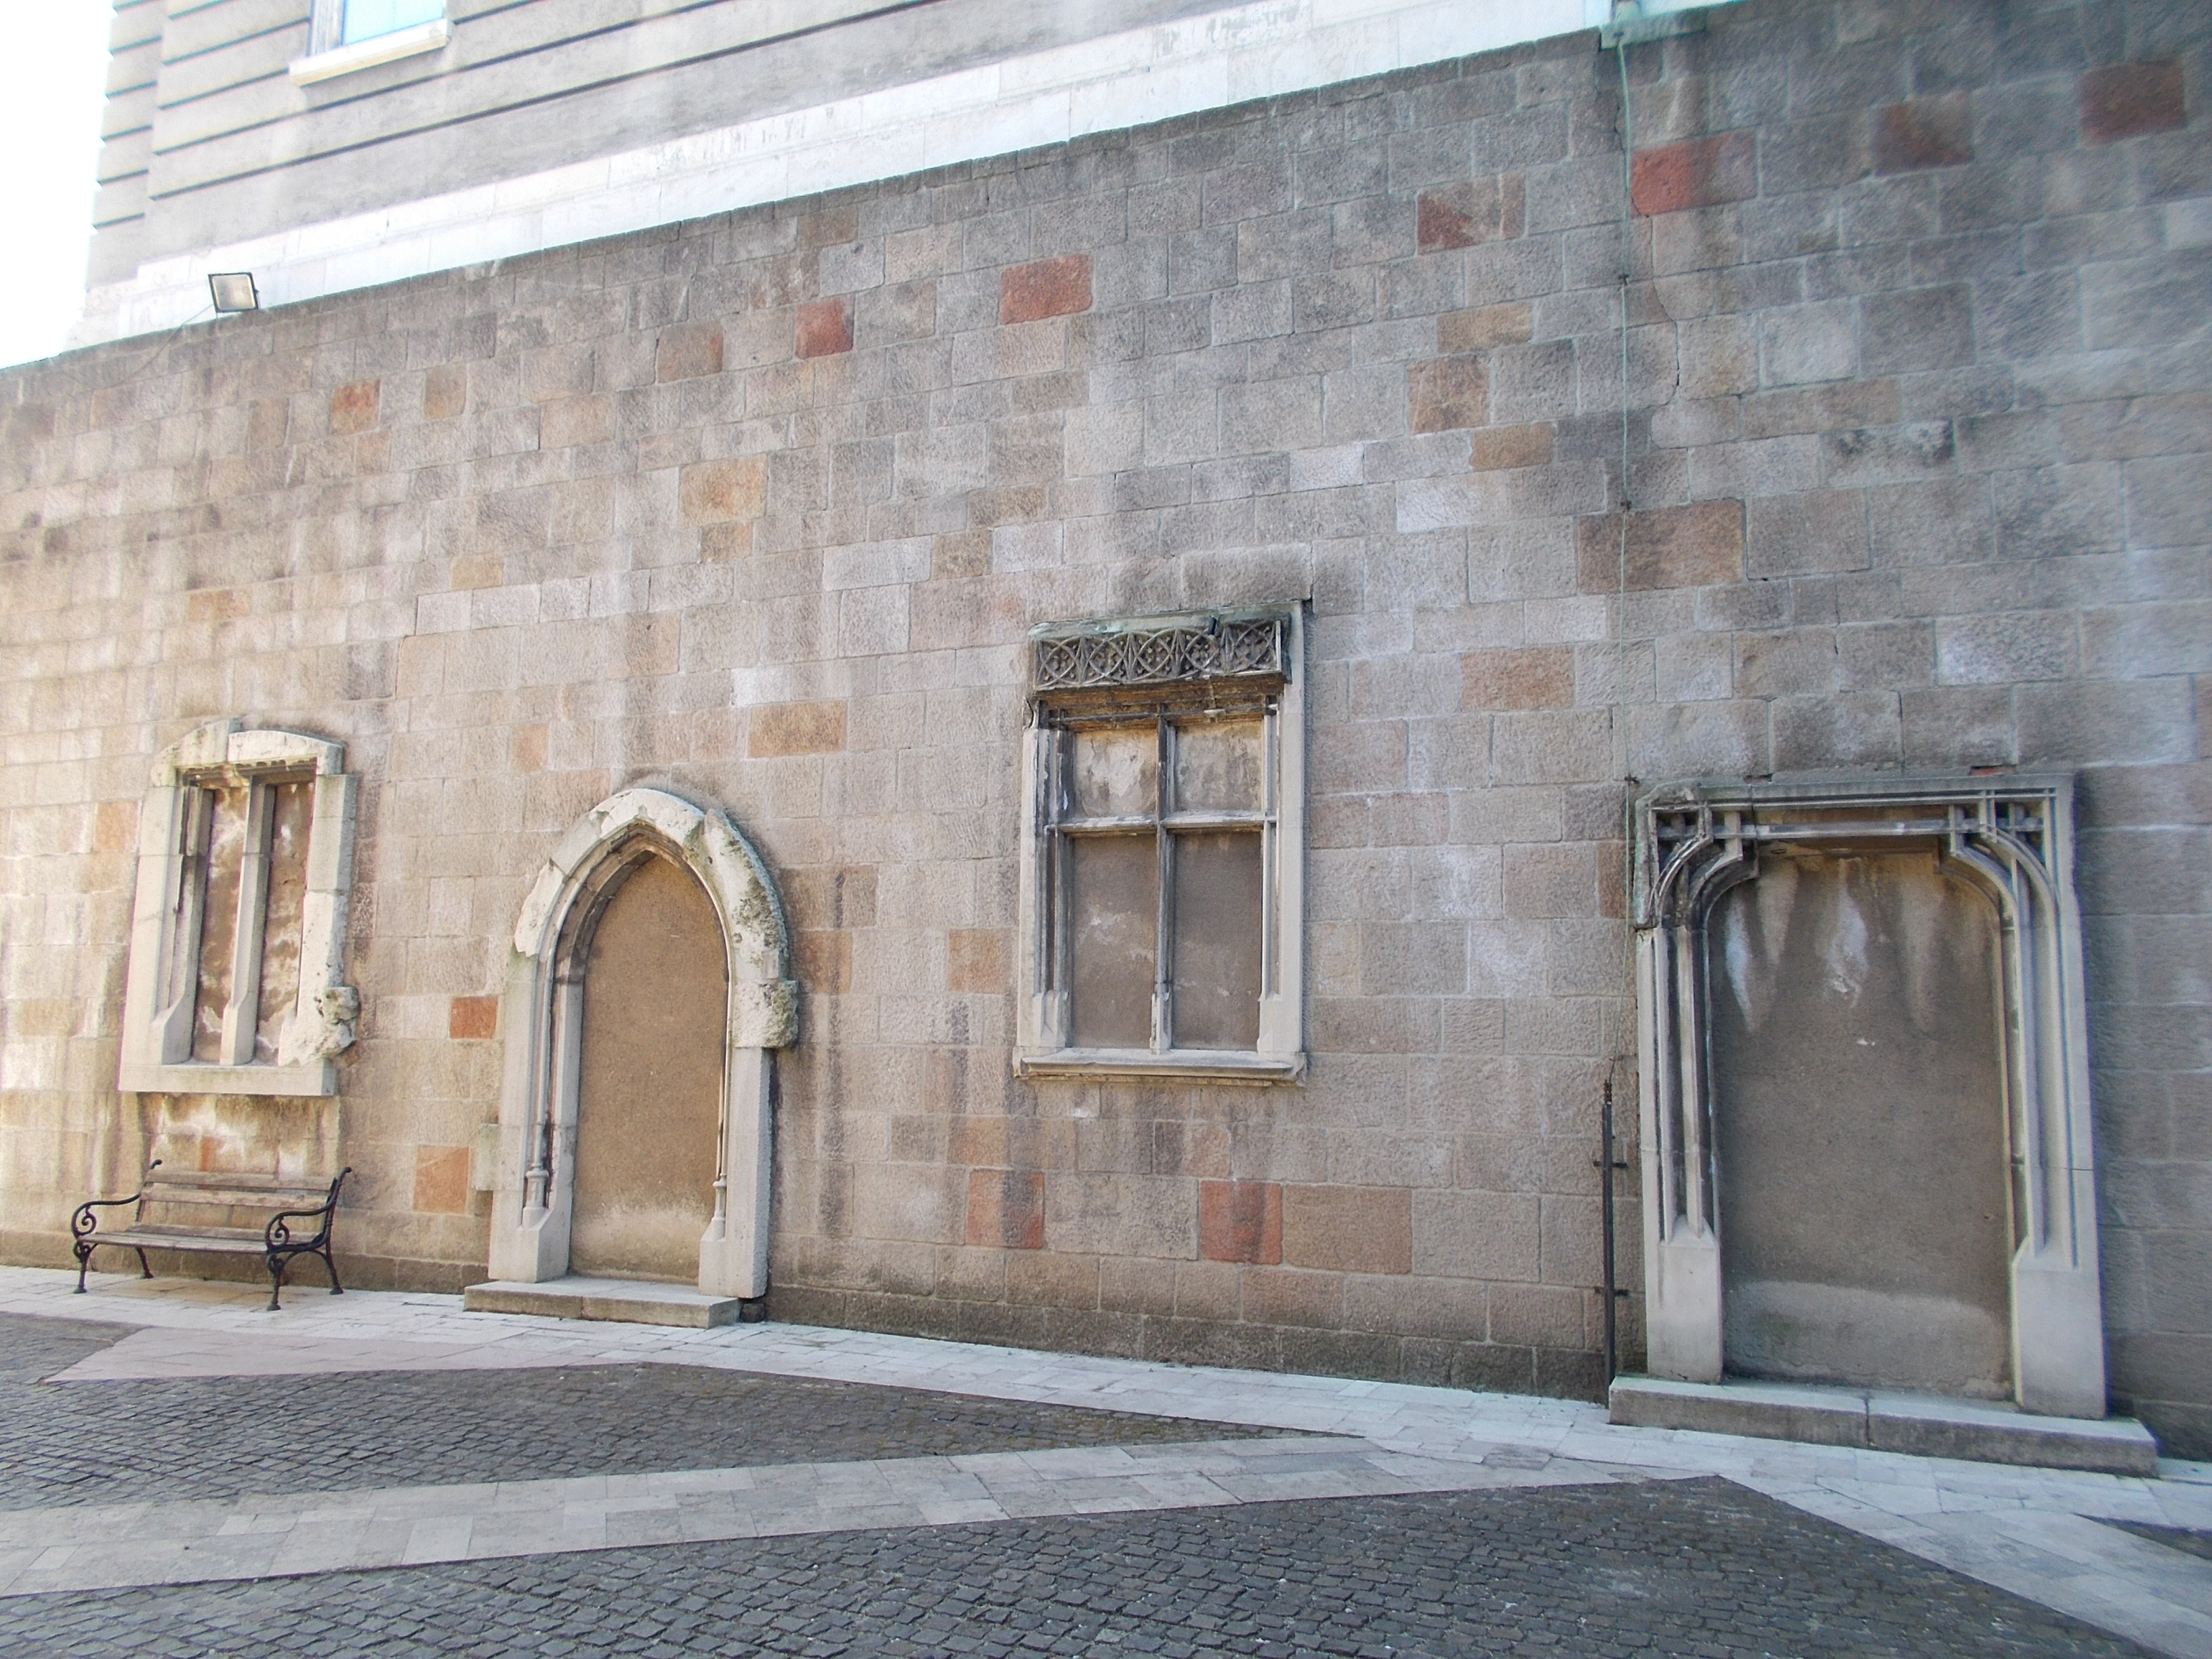 File:Castle Hill, Medieval Window And Door Frames, Buda Royal Palace.JPG